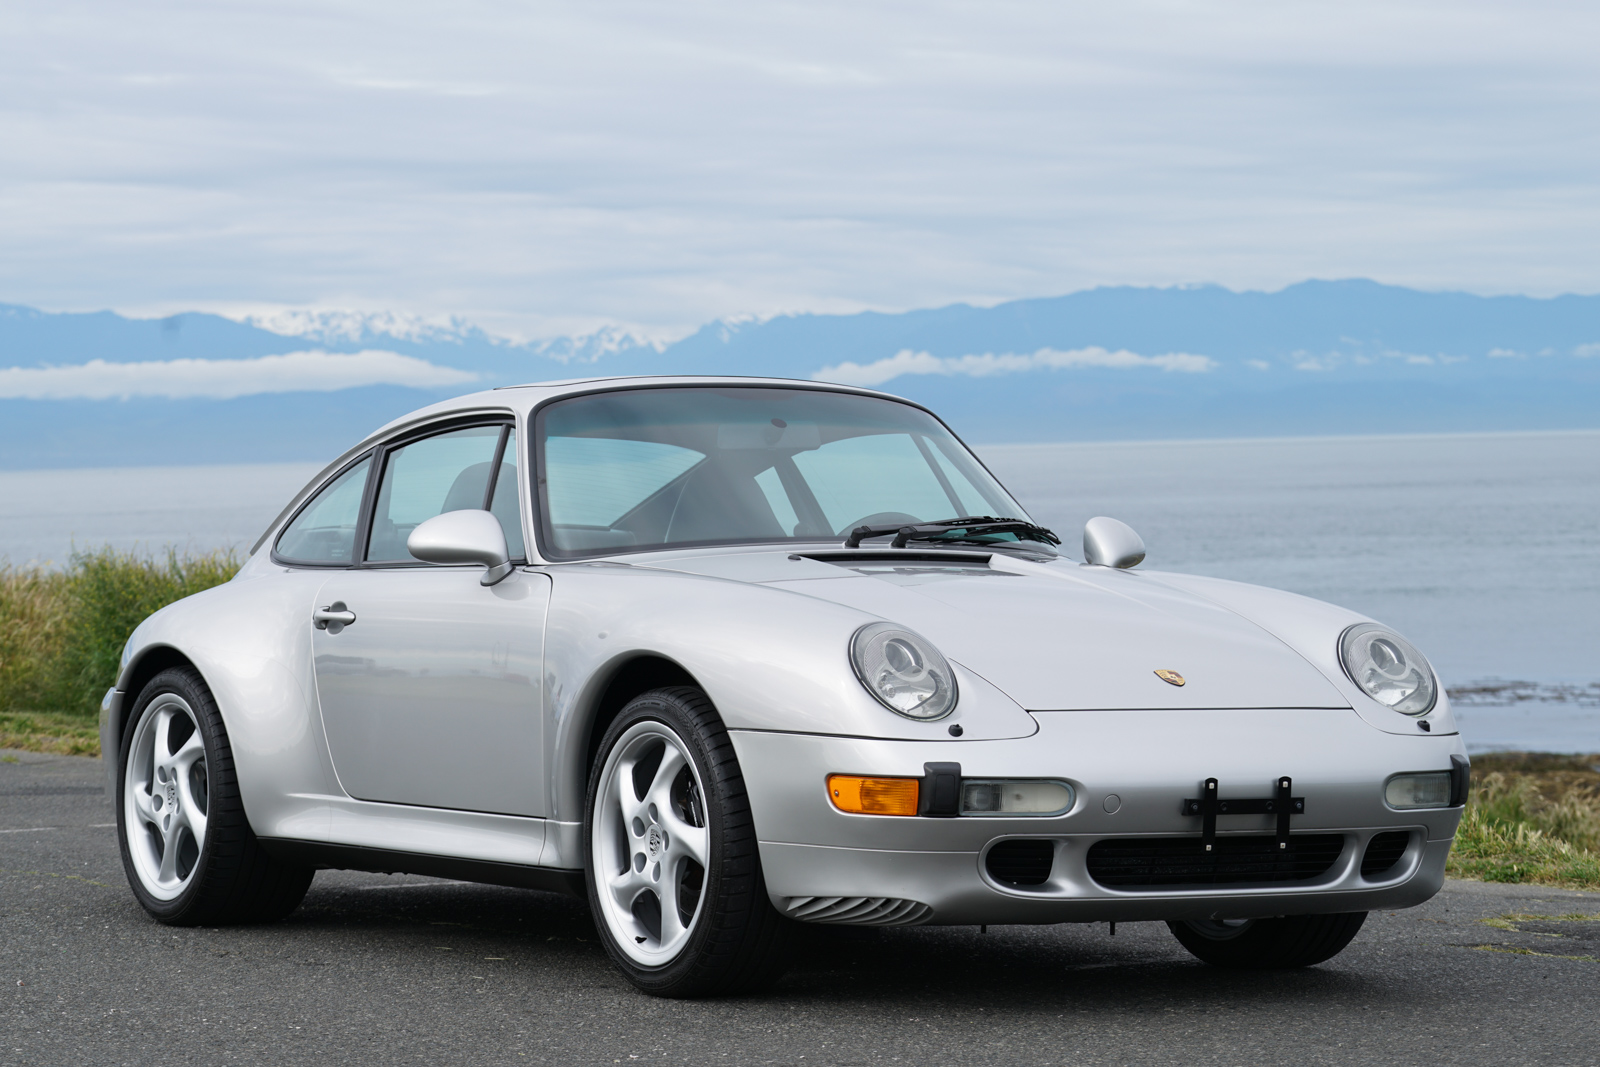 1997 porsche 911 993 carrera s for sale silver arrow cars ltd. Black Bedroom Furniture Sets. Home Design Ideas